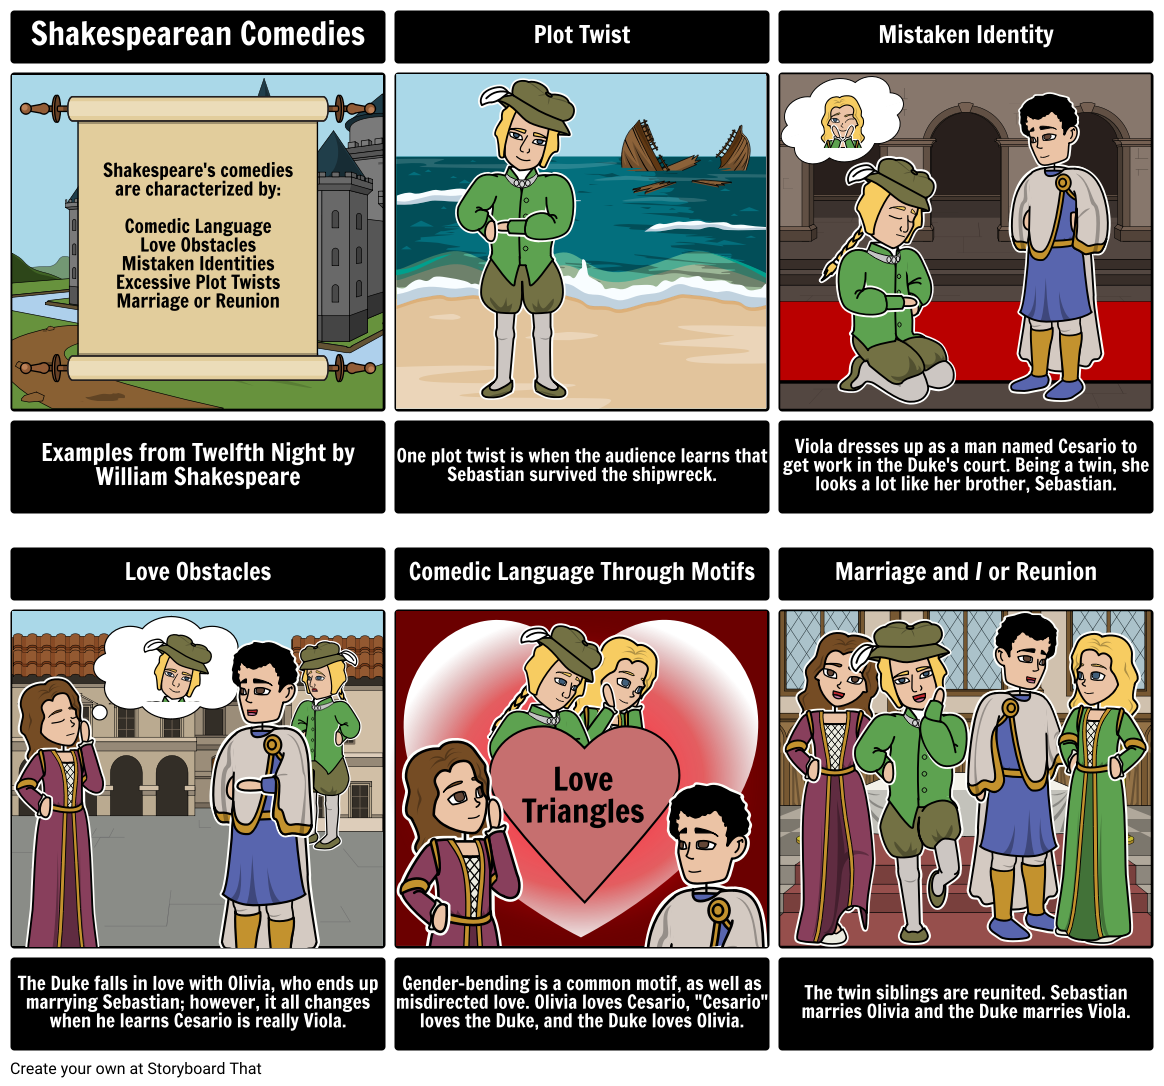 an analysis of the main character in macbeth a play by william shakespeare The macbeth character analysis chapter of this macbeth by william shakespeare study guide course is the most efficient way to study the characters depicted in this novel.